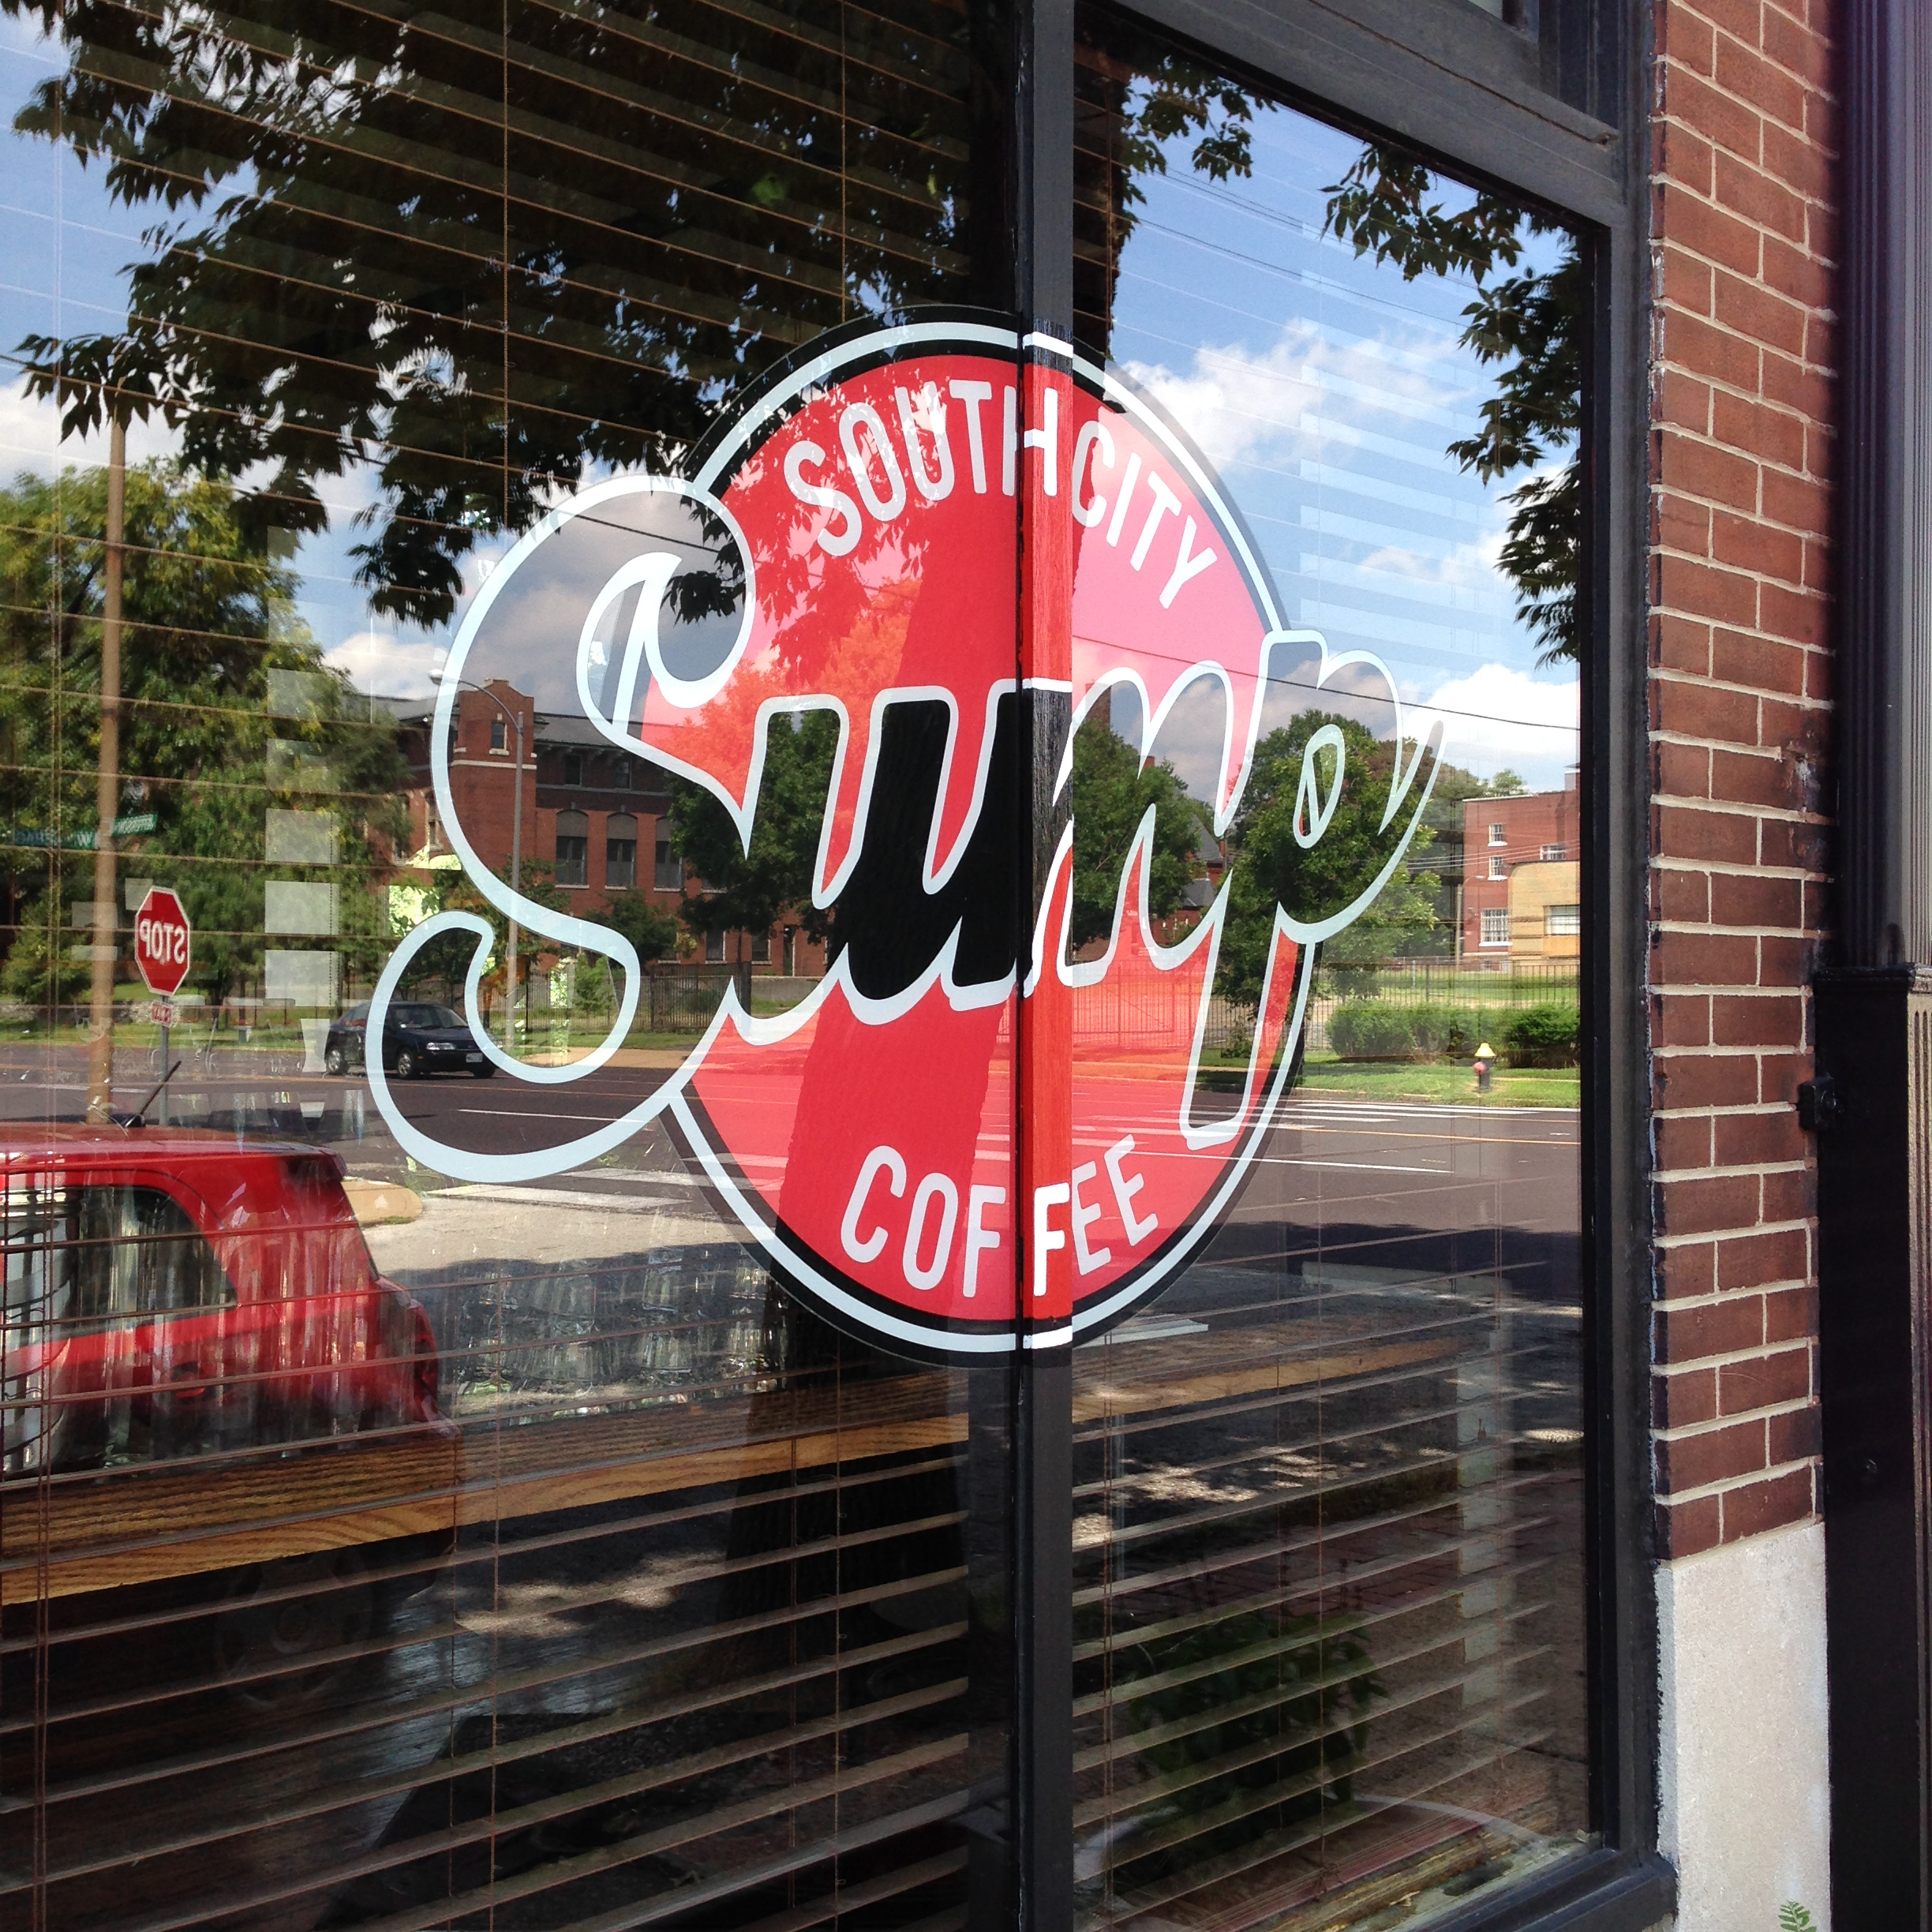 St louis in two hours sump coffee and blueprint coffee kc coffee that being said the specialty coffee that is in st louis is very good and i think that part of the industry is just going to continue to grow malvernweather Choice Image